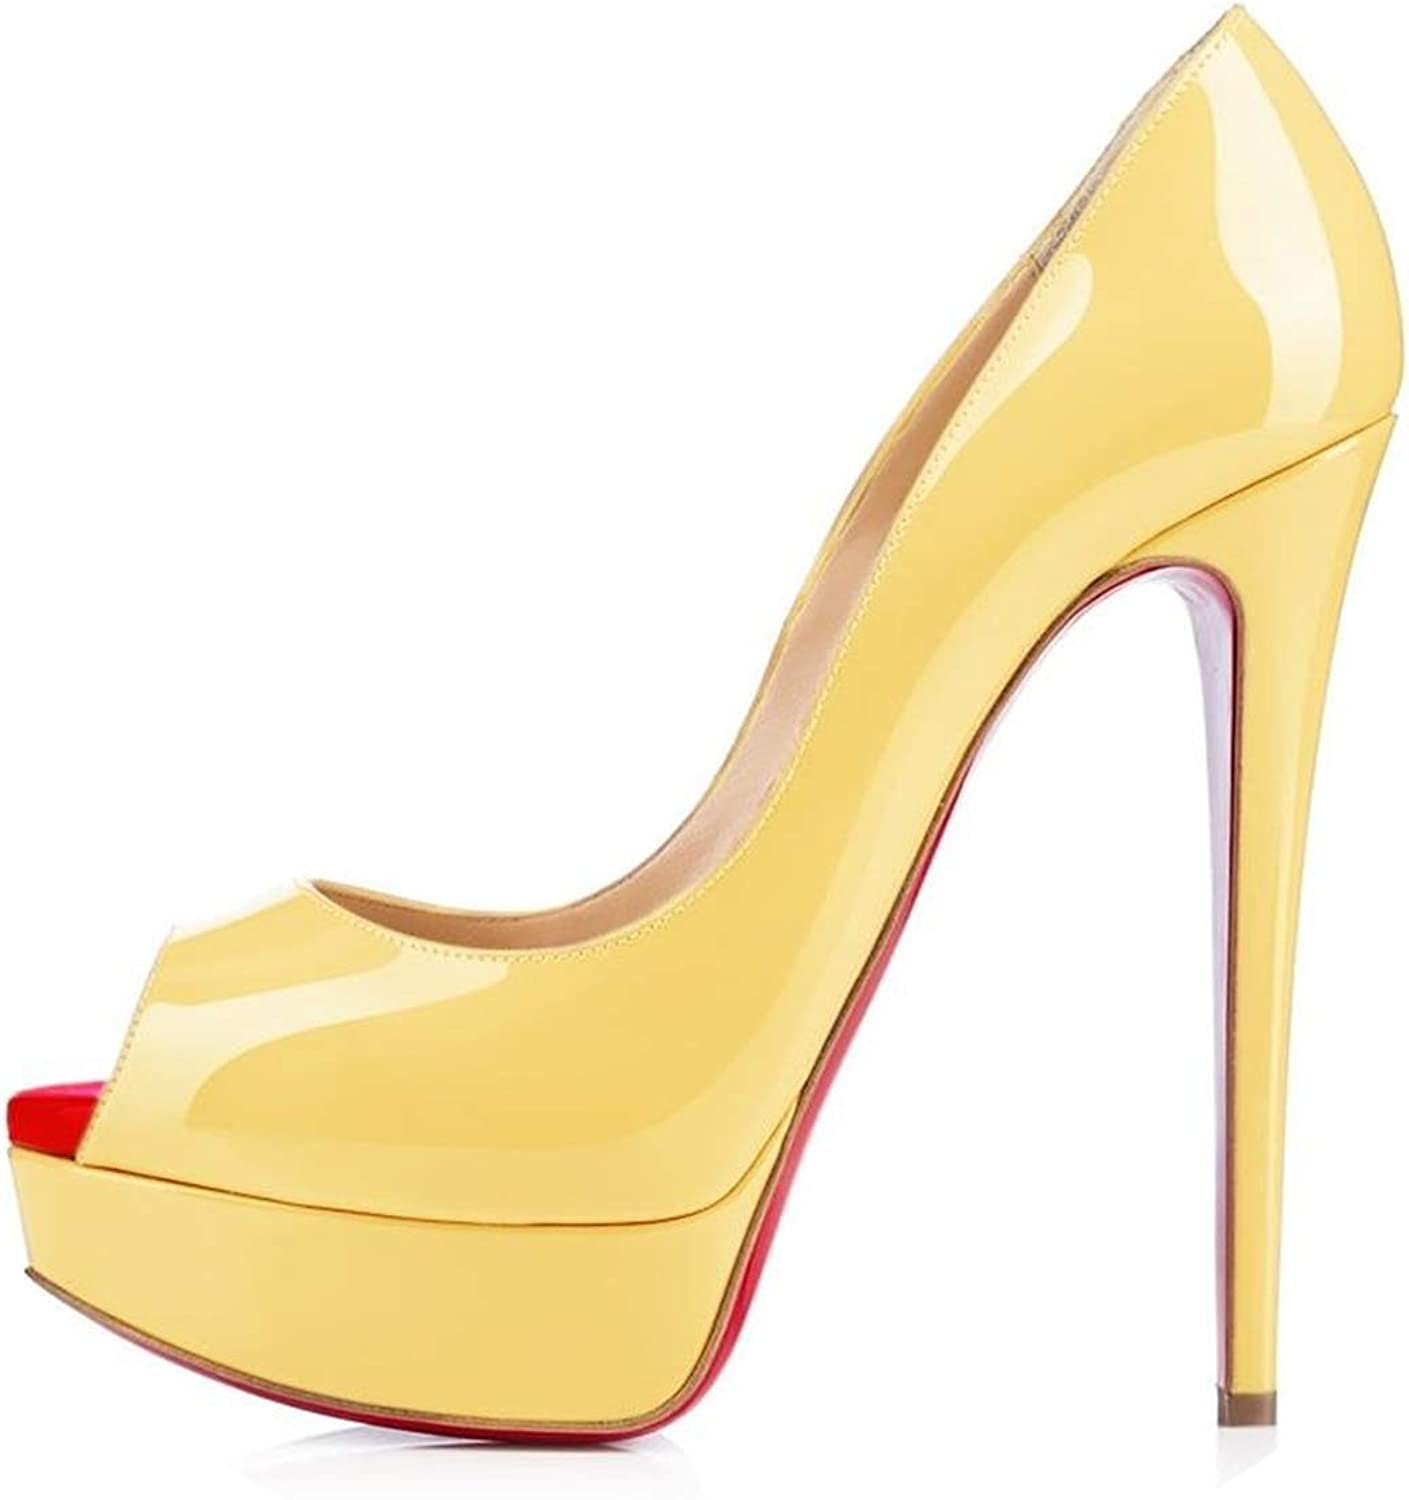 LAIGEDANZI Womens Pumps Leather Wedges Platform Stiletto High Heels Open Toe Sexy Party shoes,Yellow,11